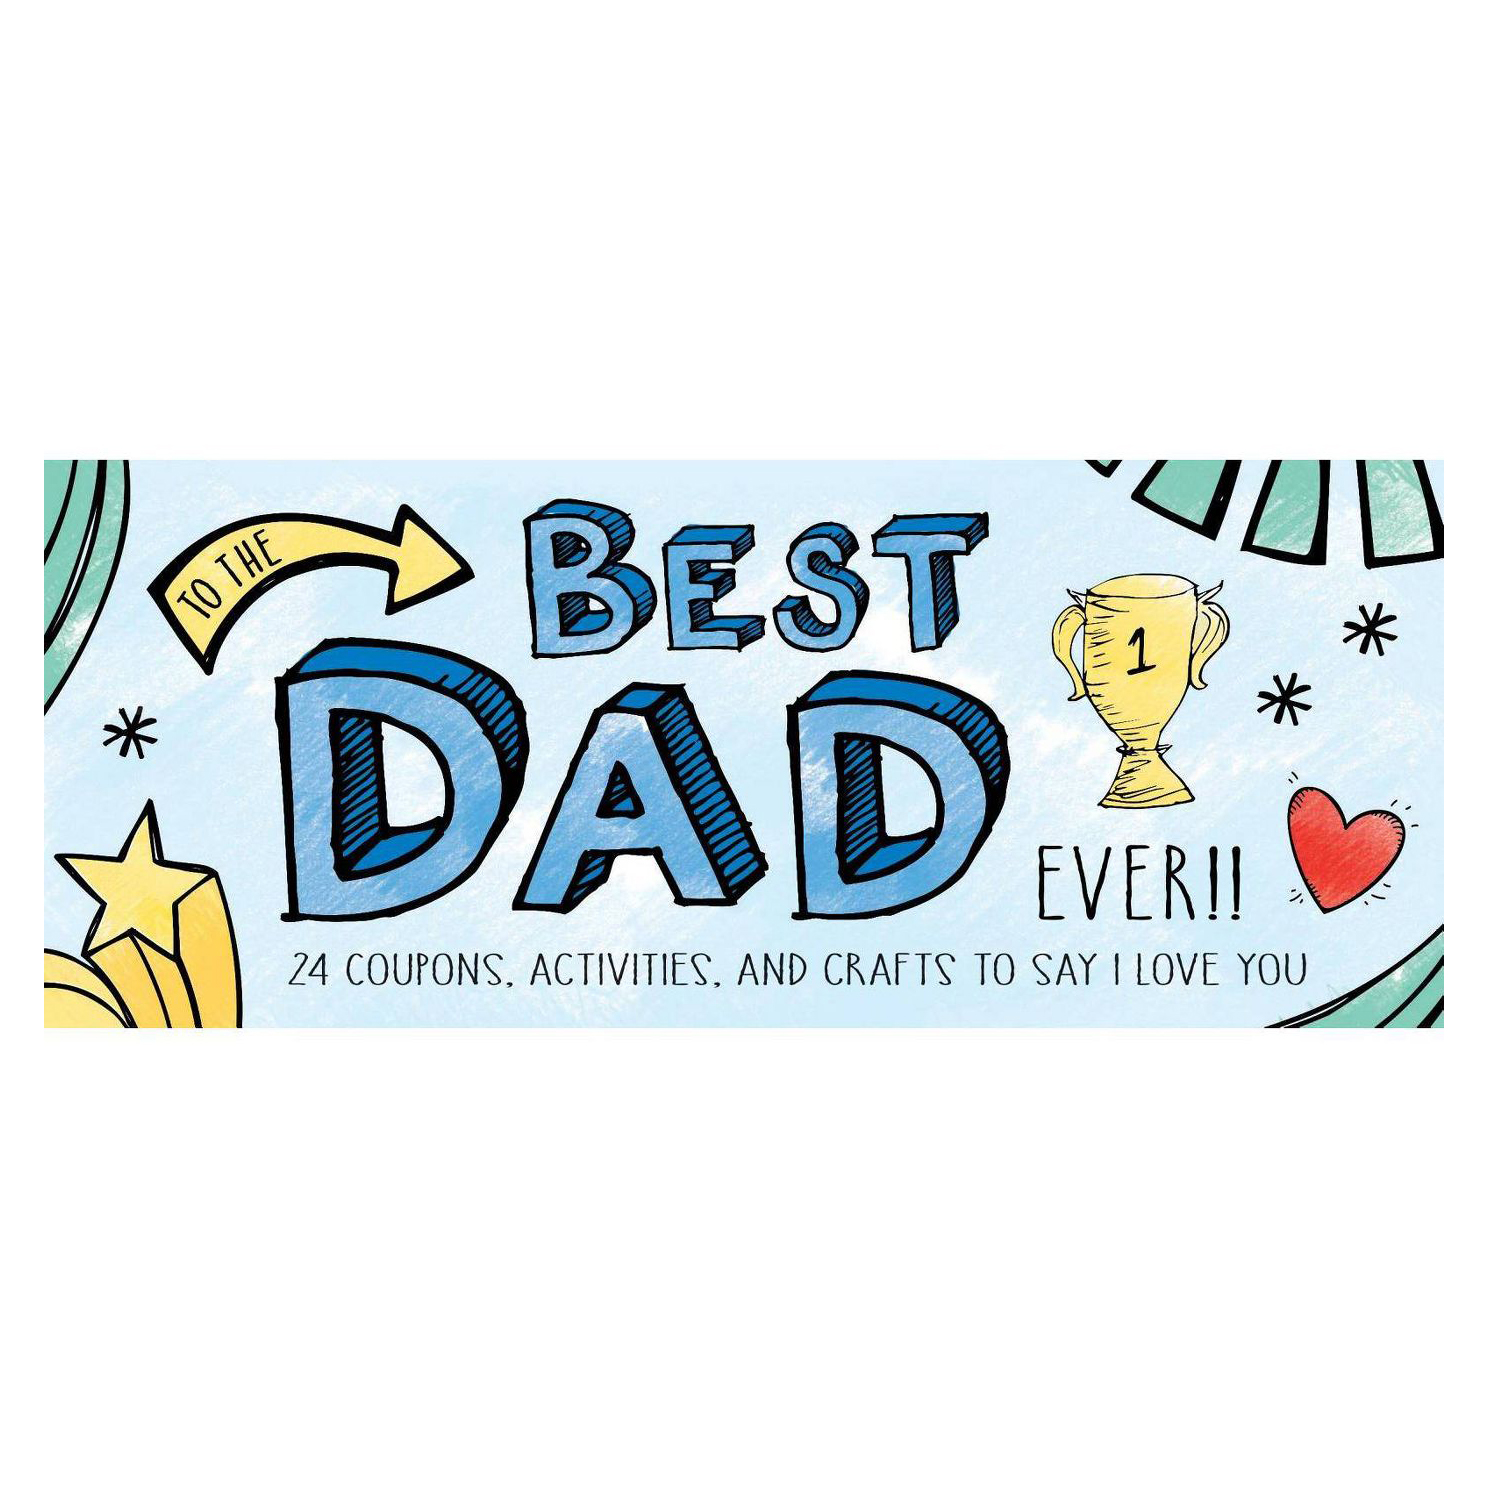 To the Best Dad Ever! Coupon Book